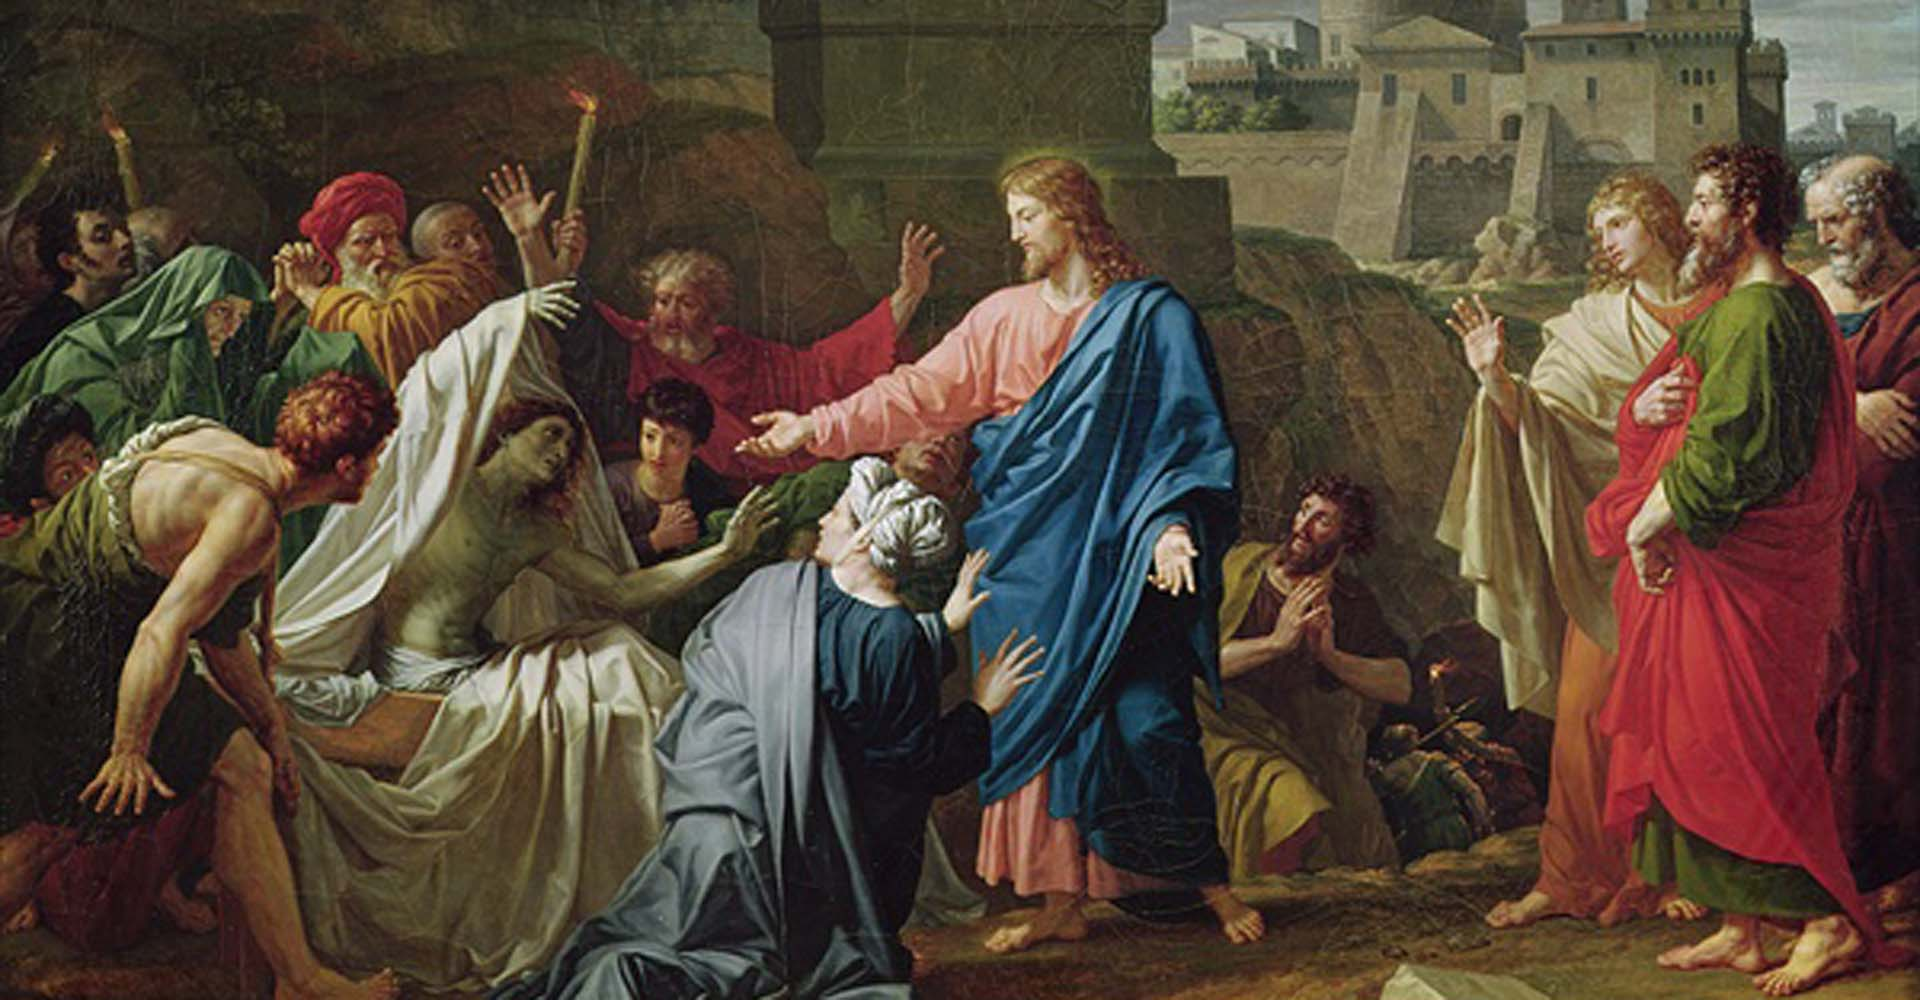 Miracle of Jesus. Jesus raises the son of the widow of Nain